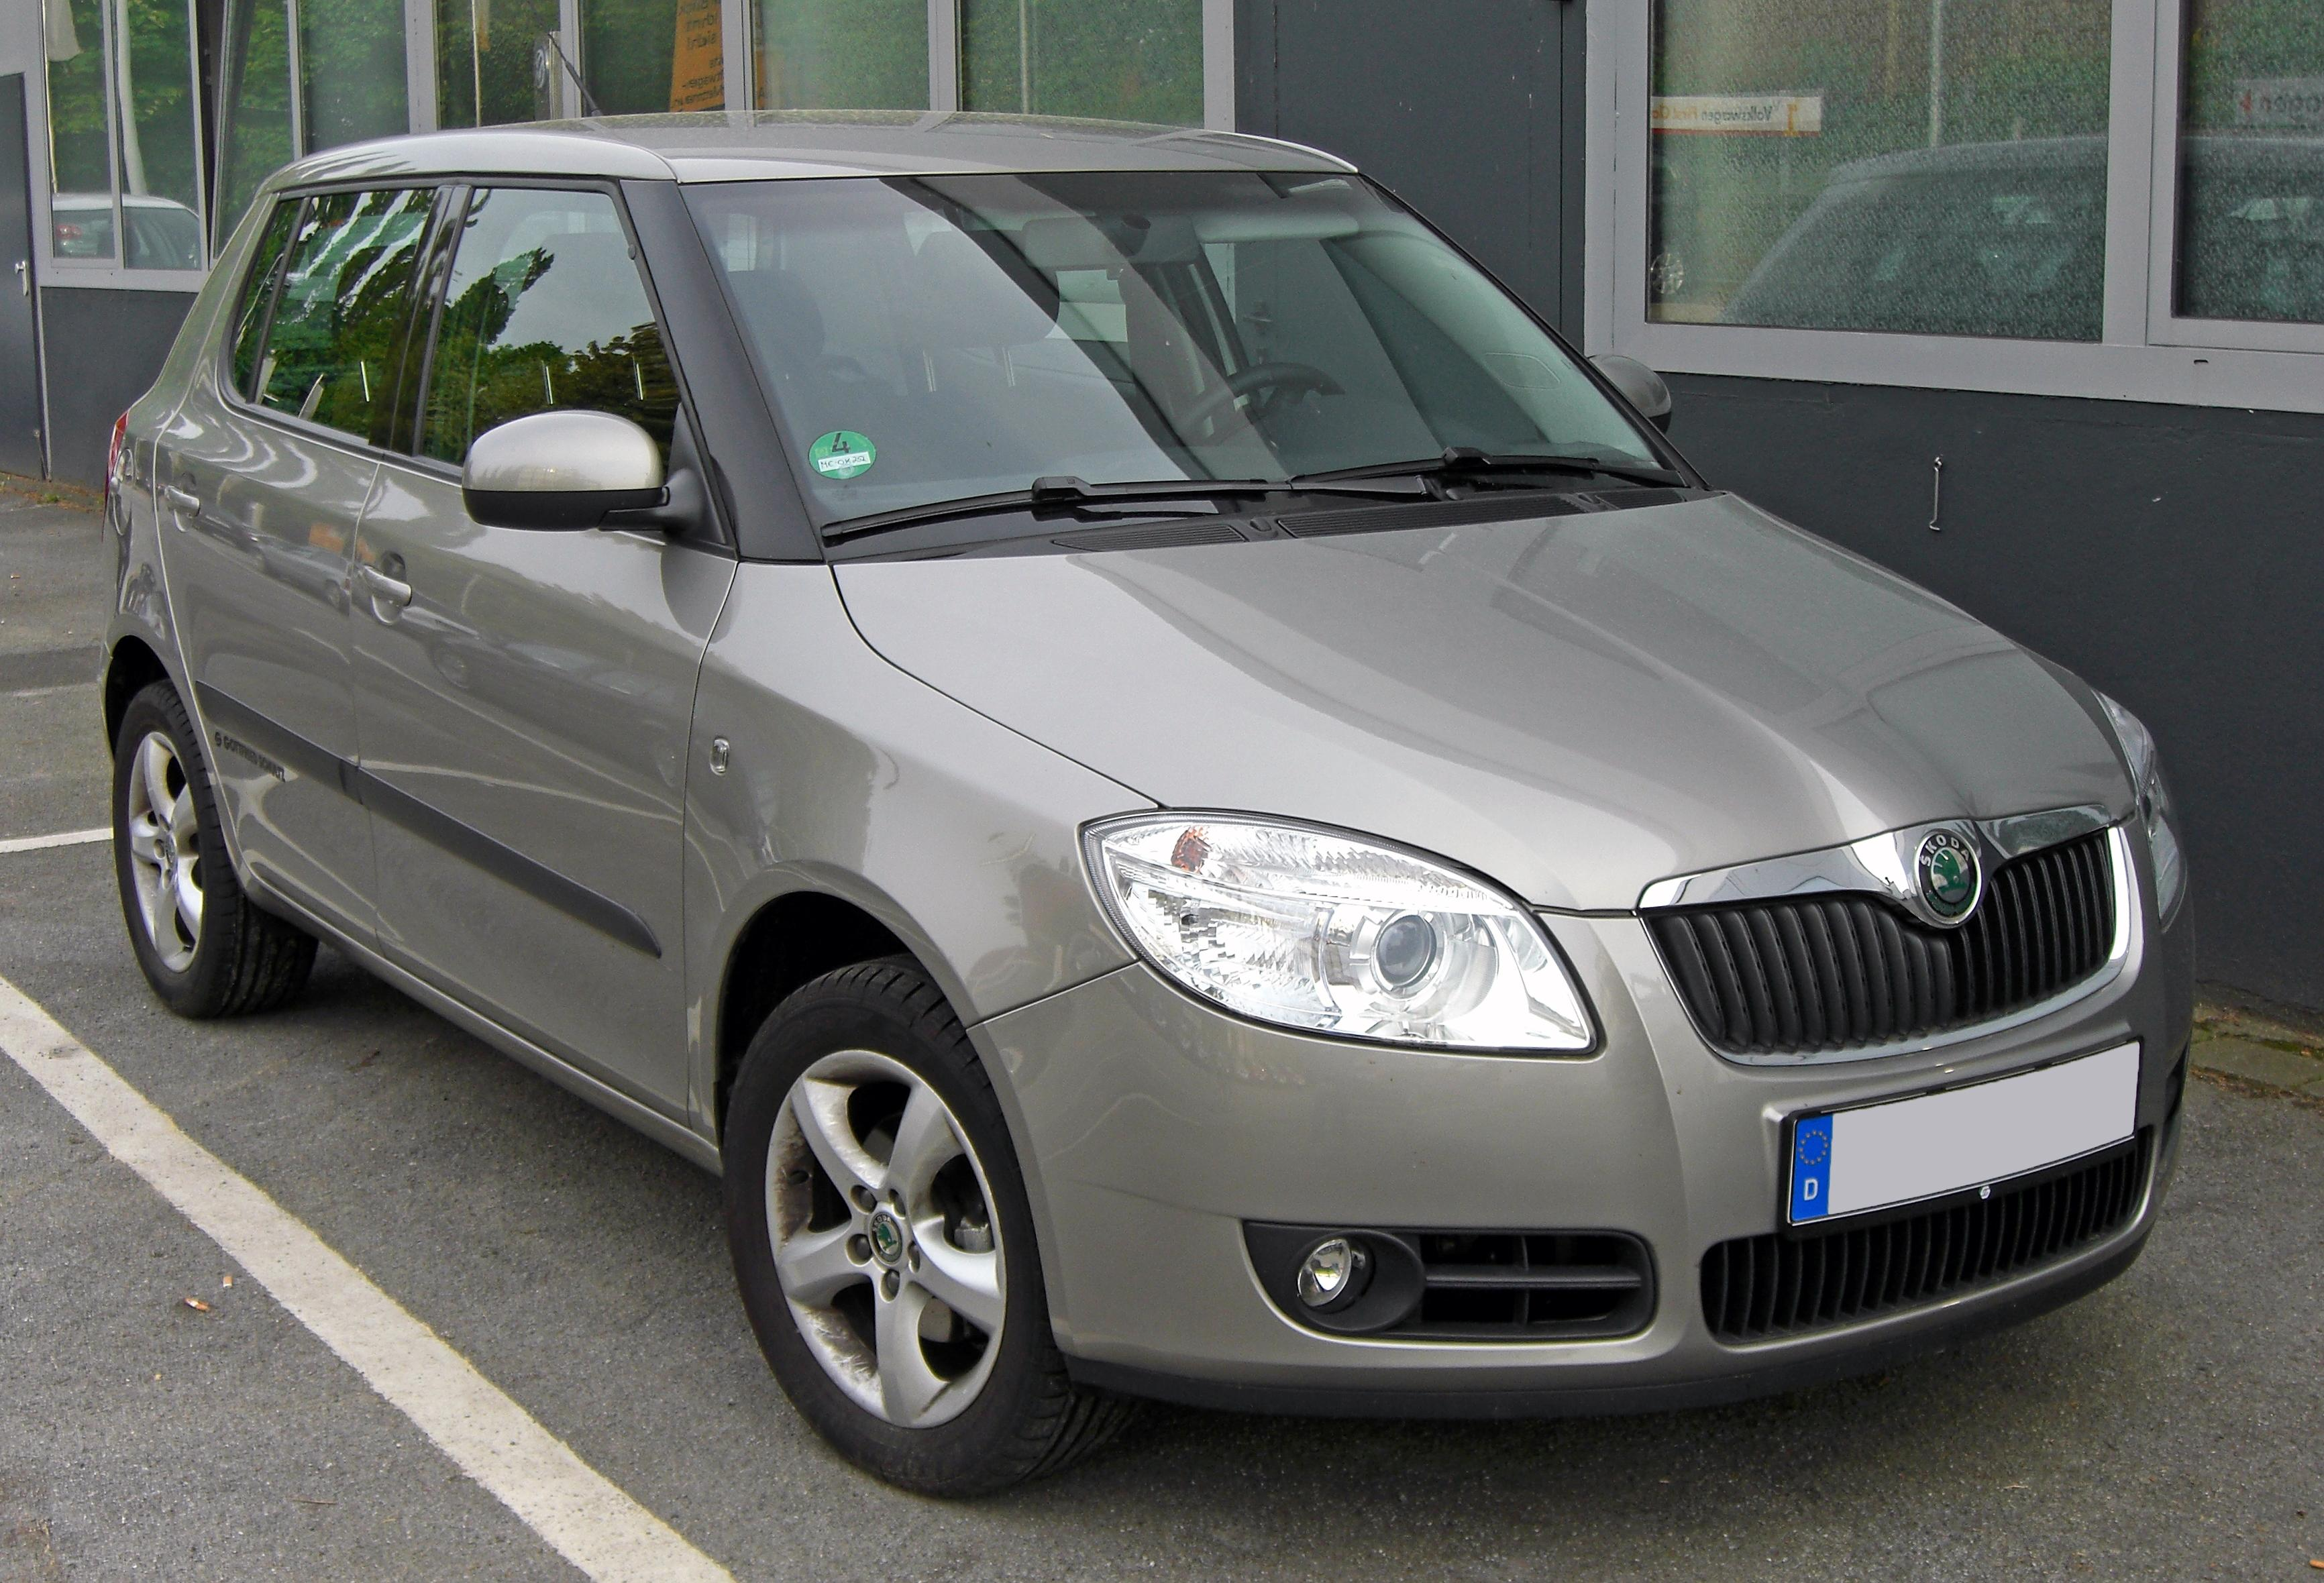 2012 skoda fabia ii pictures information and specs. Black Bedroom Furniture Sets. Home Design Ideas